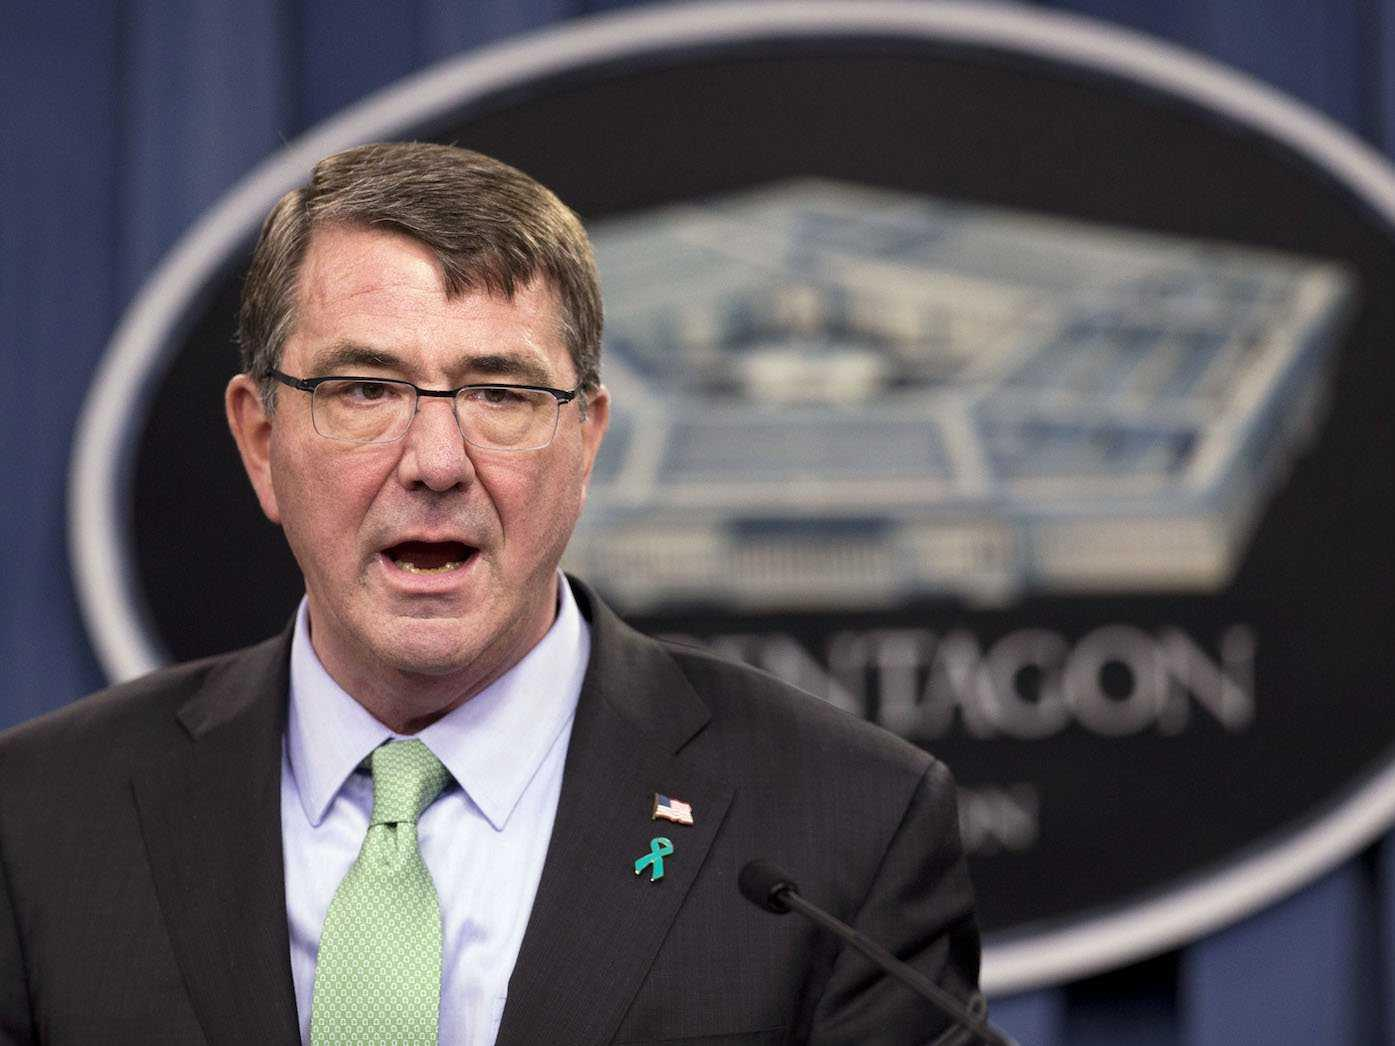 These are some of the weapons the Pentagon wants for its $583 billion budget